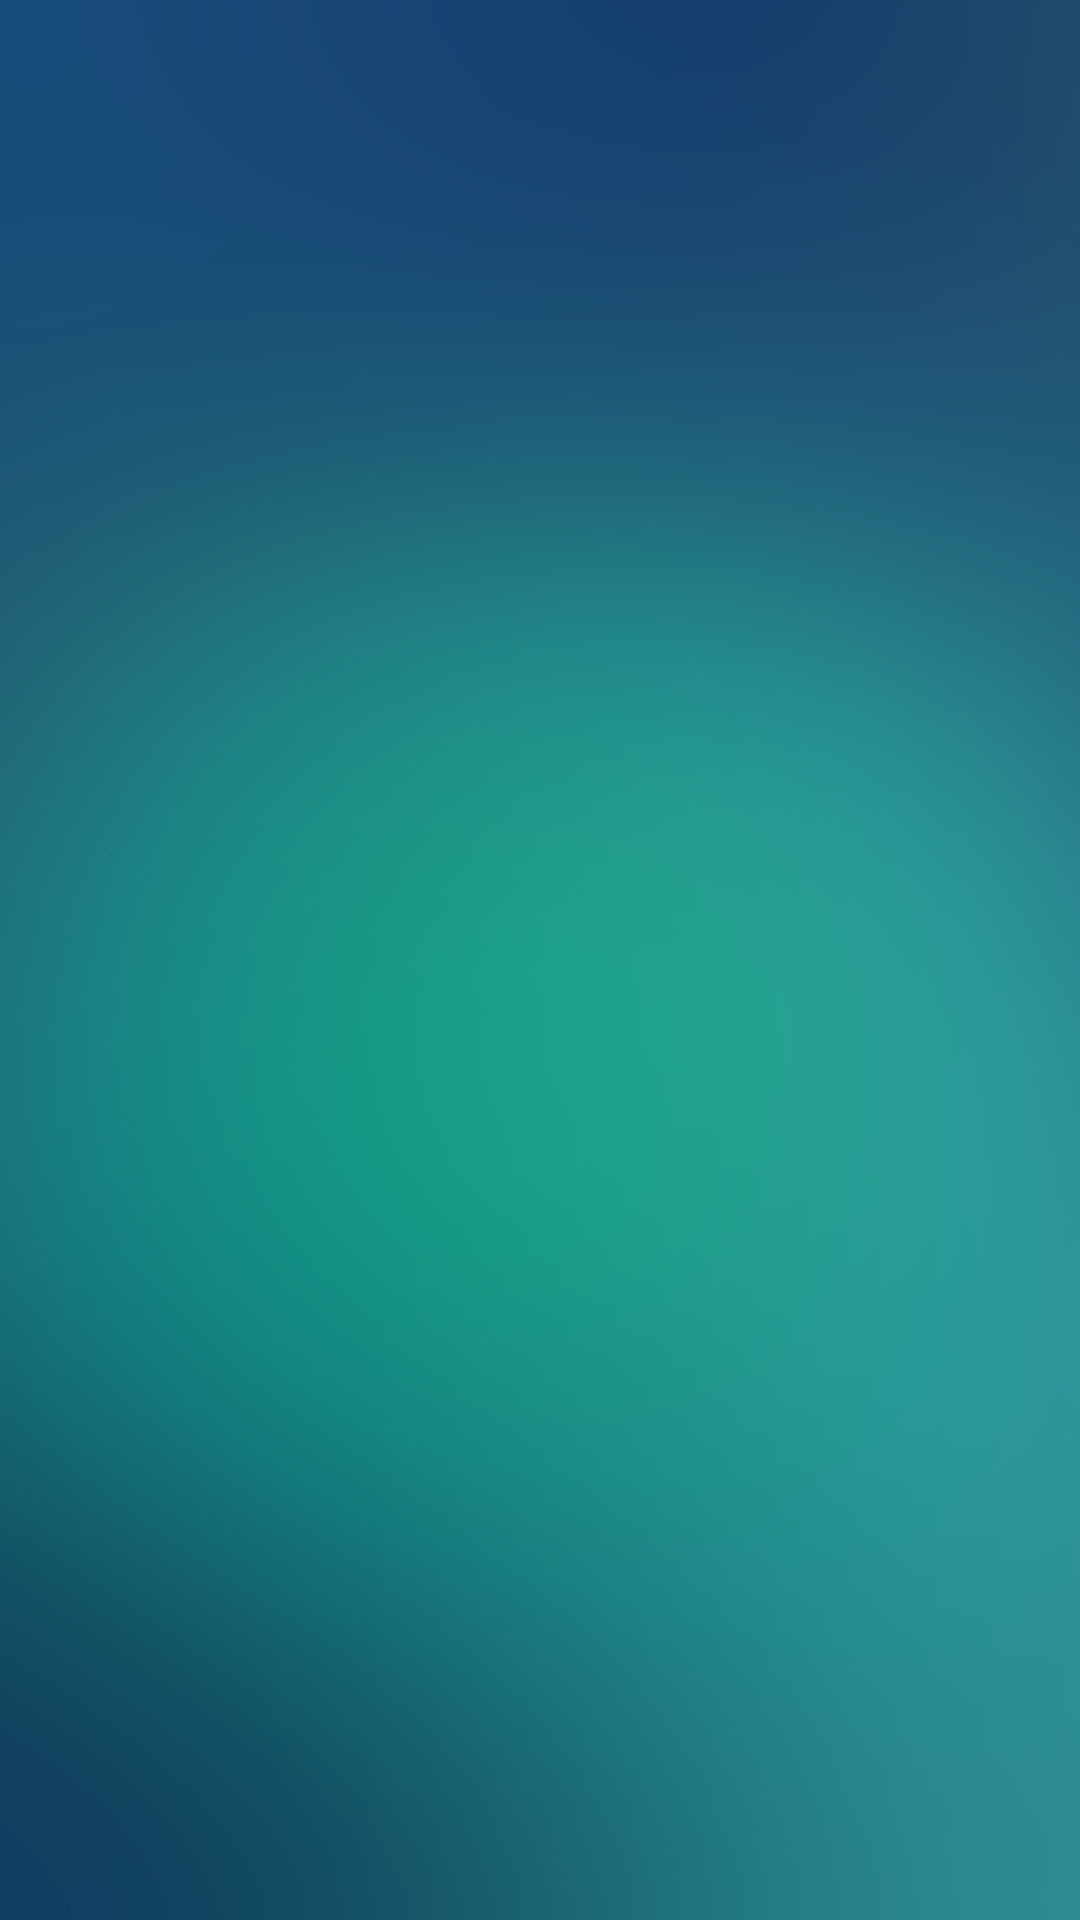 1080x1920 Blue Green Circle Gradient Android Wallpaper ...